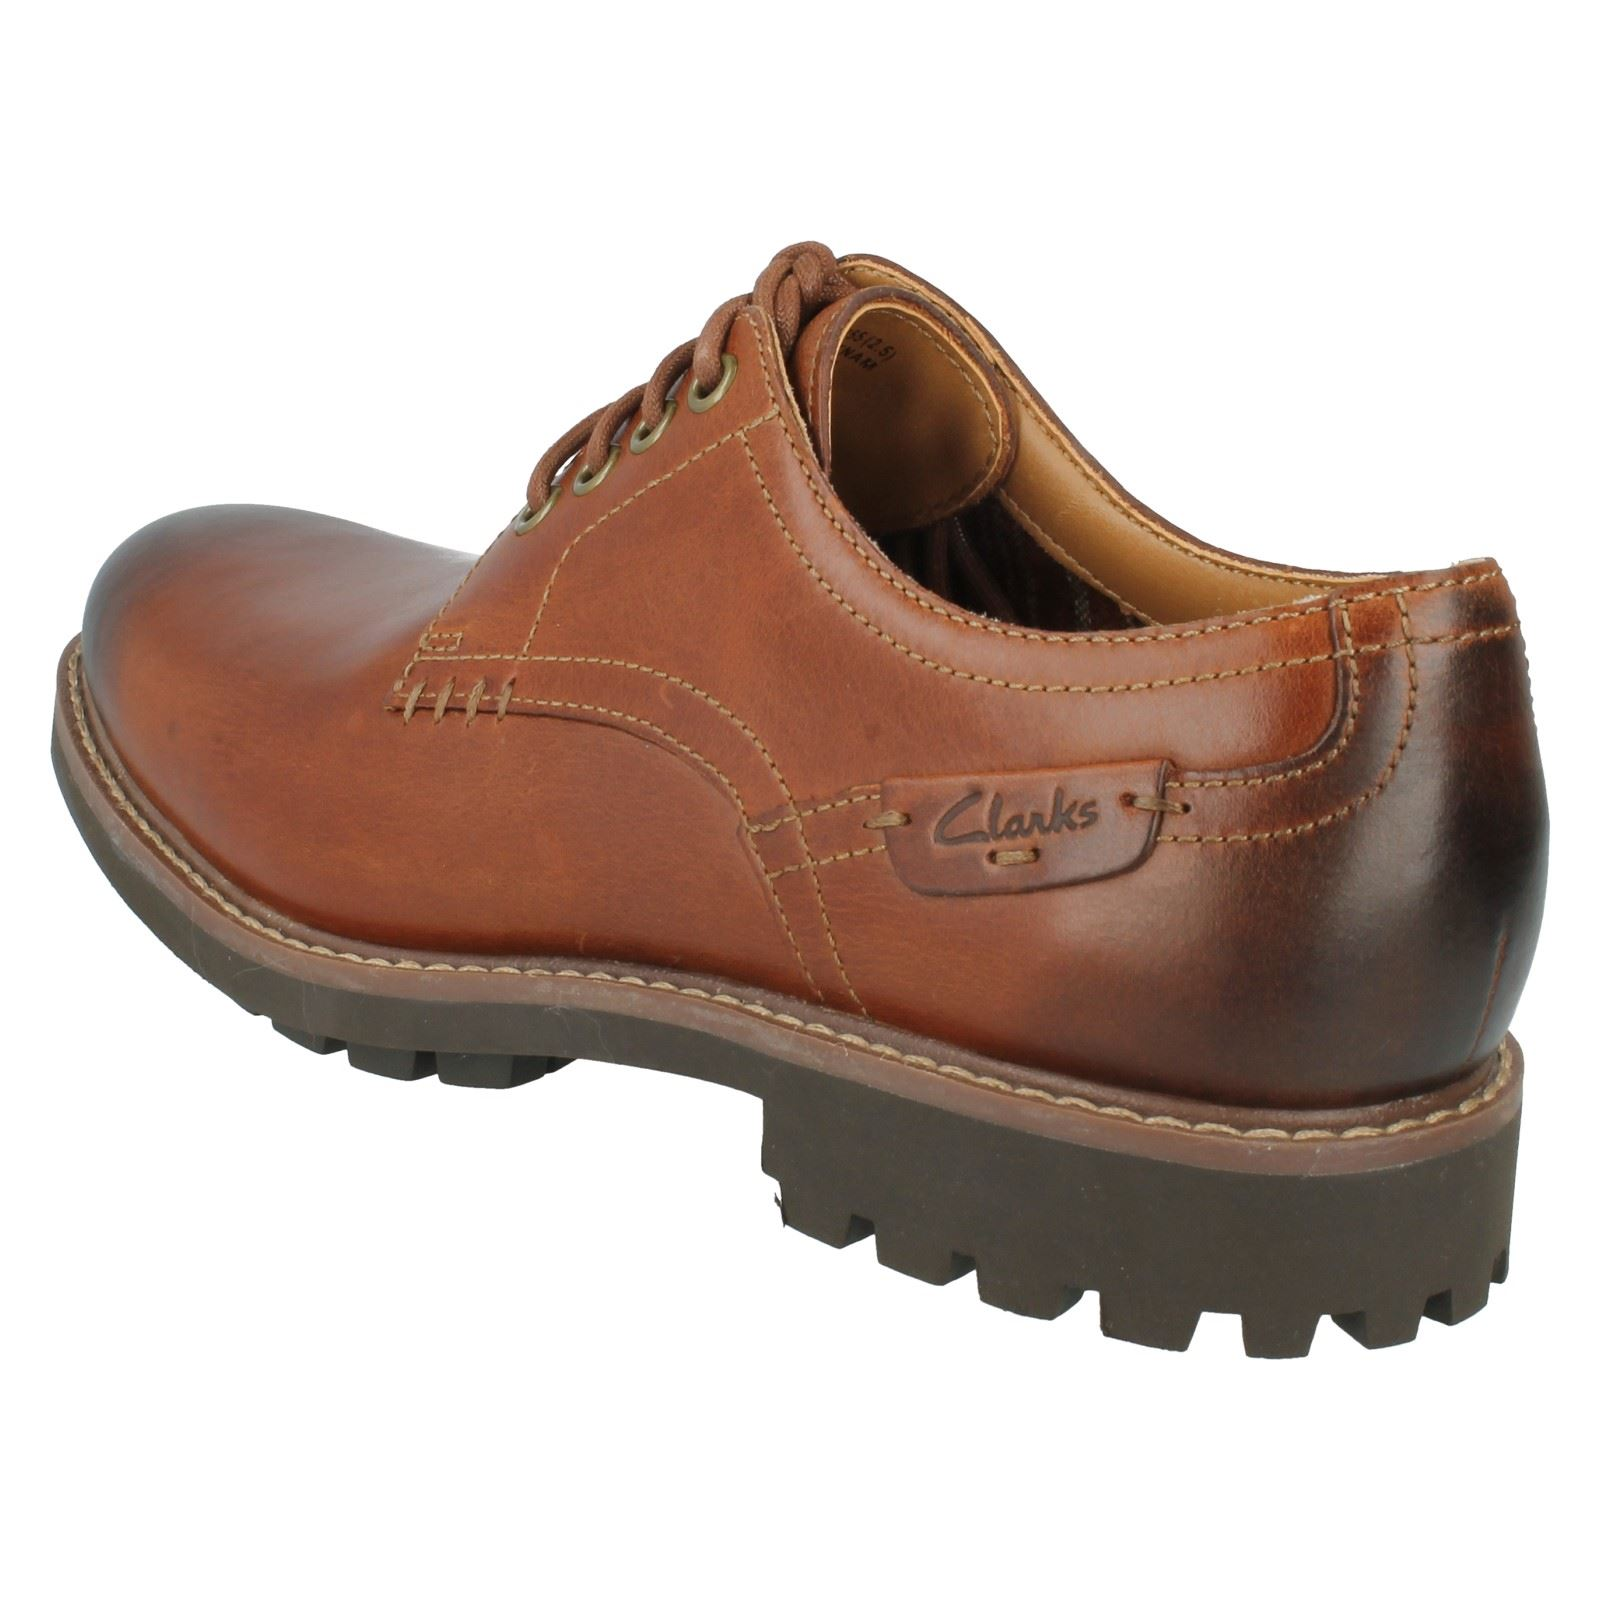 Men's Clarks Casual Lace Up Shoes Style - Montacute Hall